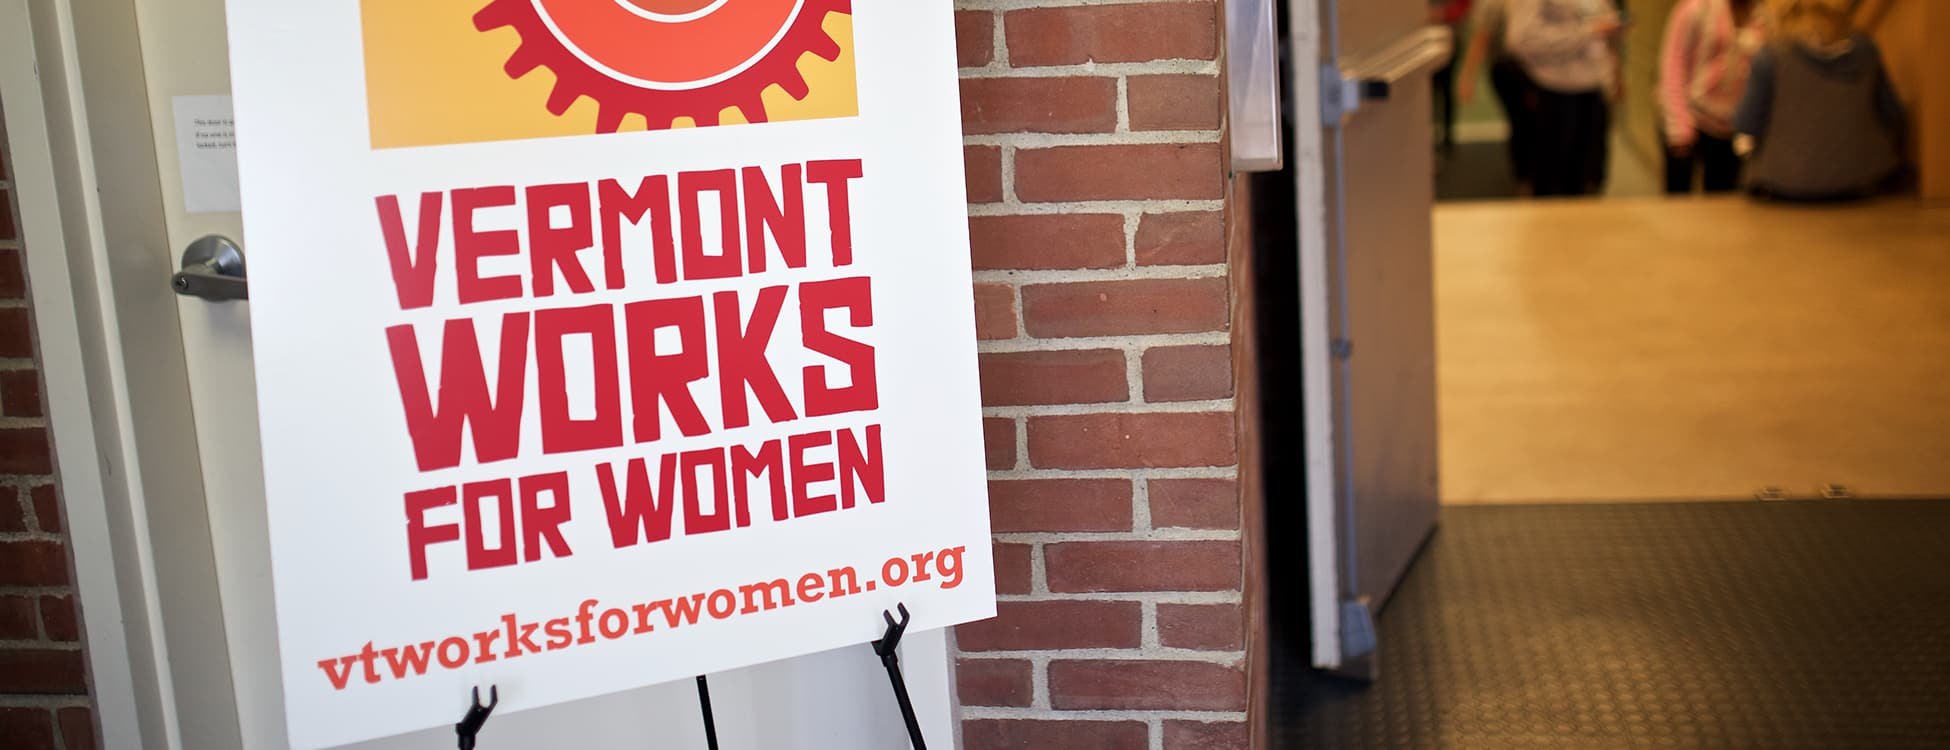 vermont works for women sign